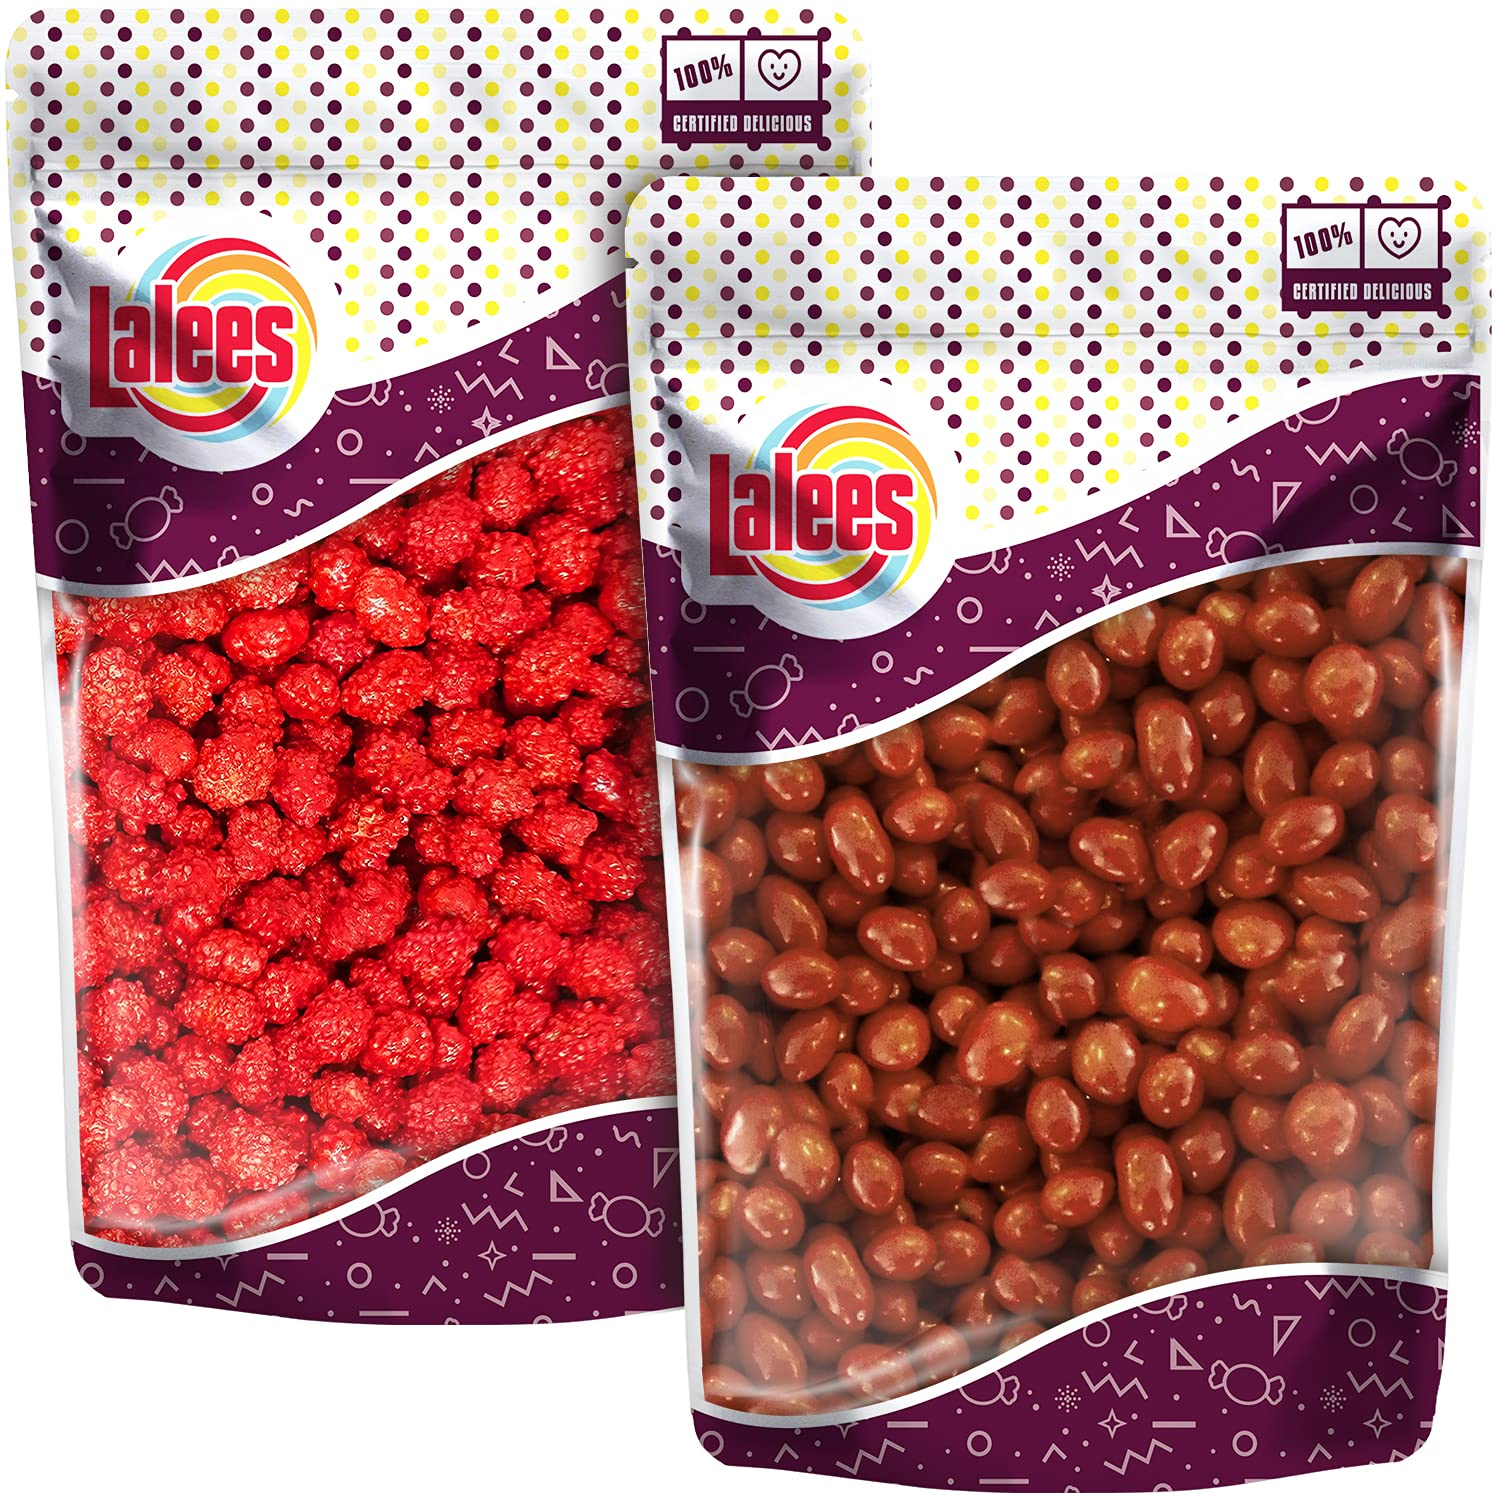 Lalees Boston Baked Beans - French Burnt Peanuts - Candy Coated Peanuts - 2 Pack of 1 Pound Each - Bulk Unwrapped Candy - Old Fashion Candy